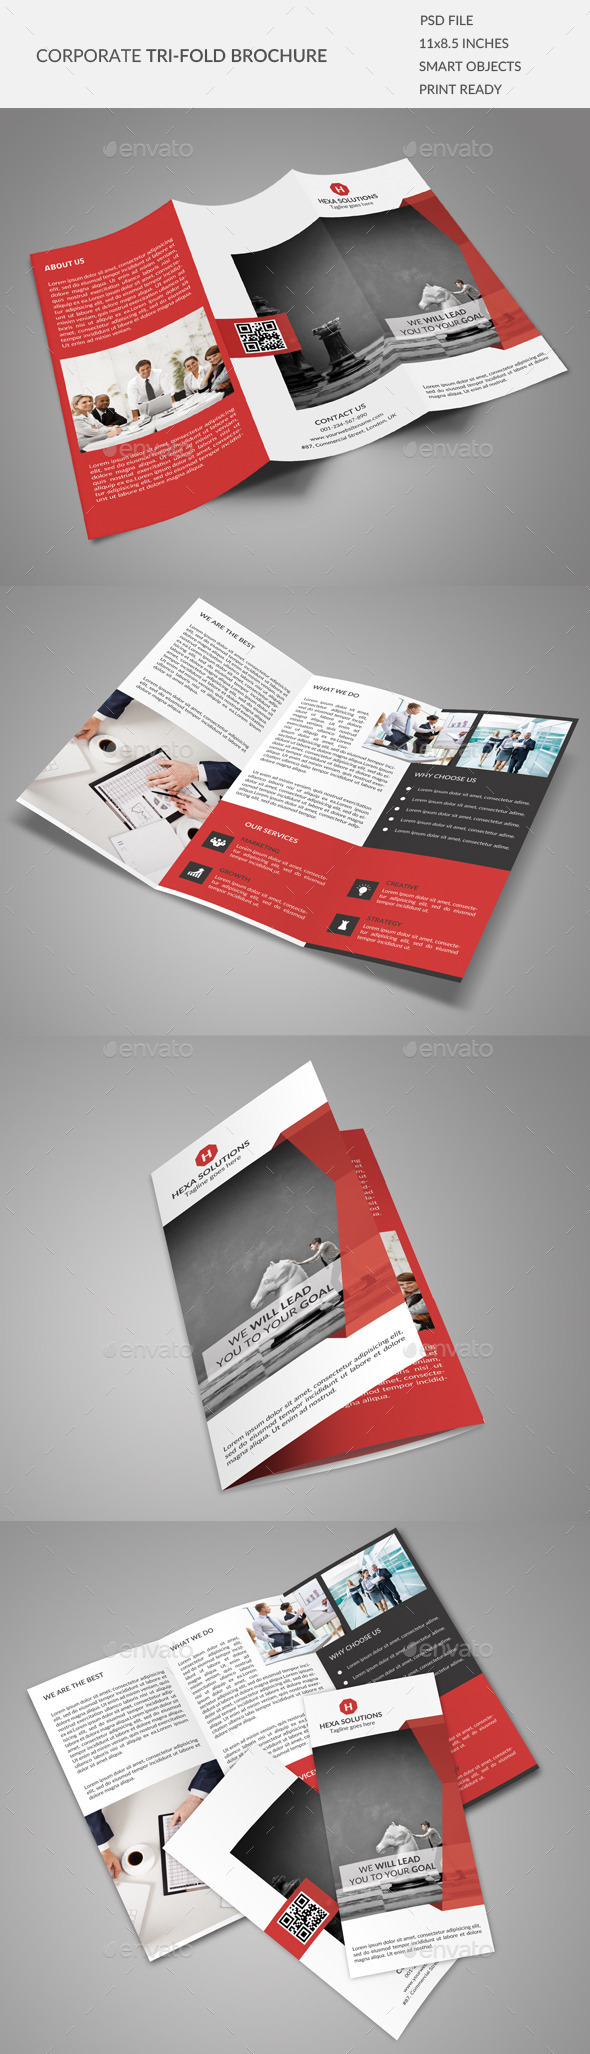 GraphicRiver Corporate Tri-fold Brochure 02 9120992